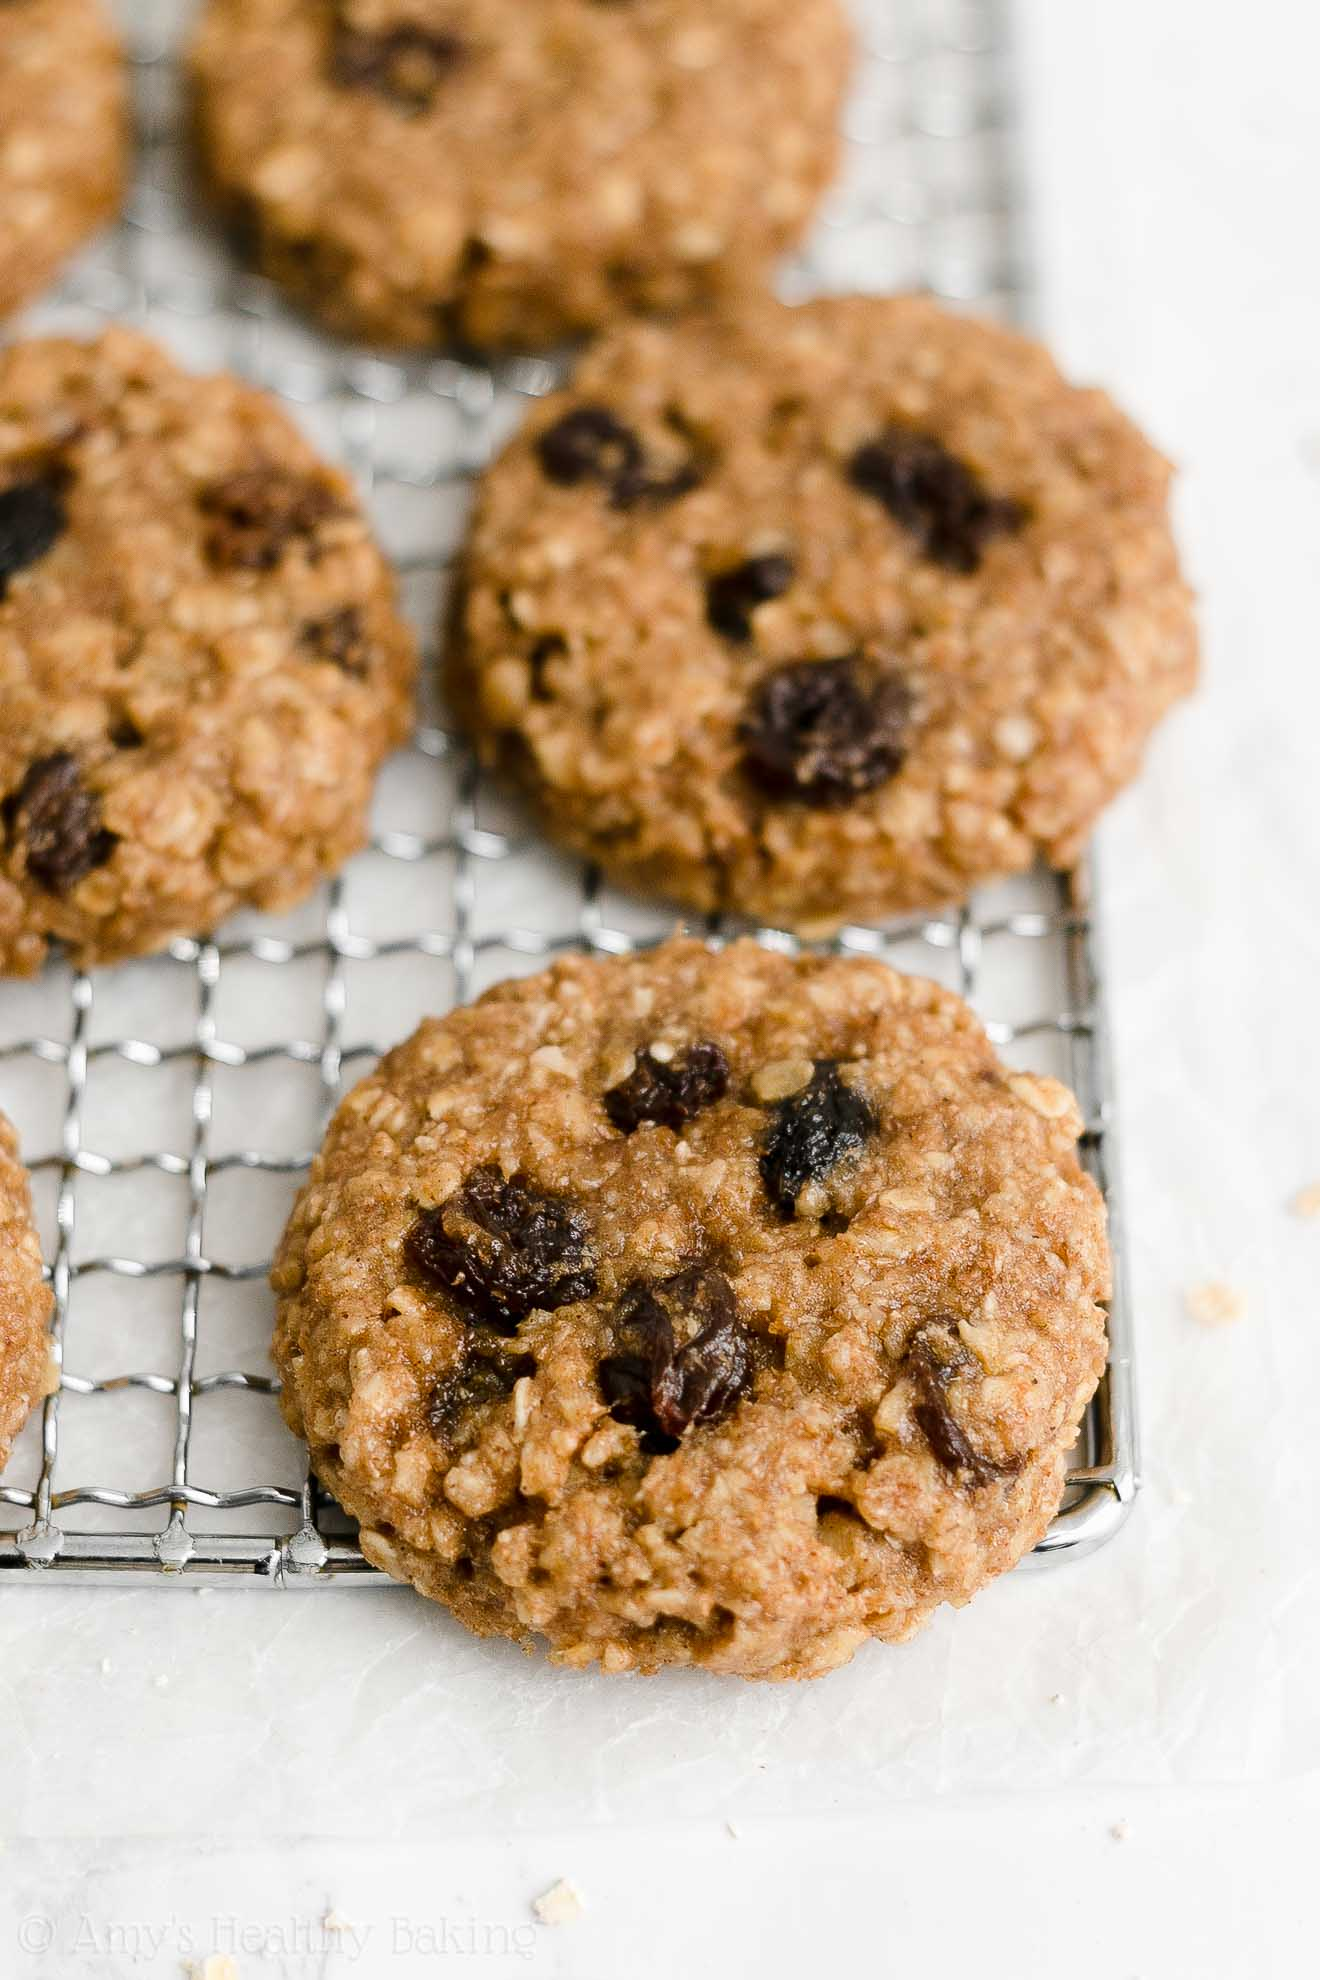 Healthy Vegan Flourless Eggless Applesauce Oatmeal Raisin Cookies No Butter